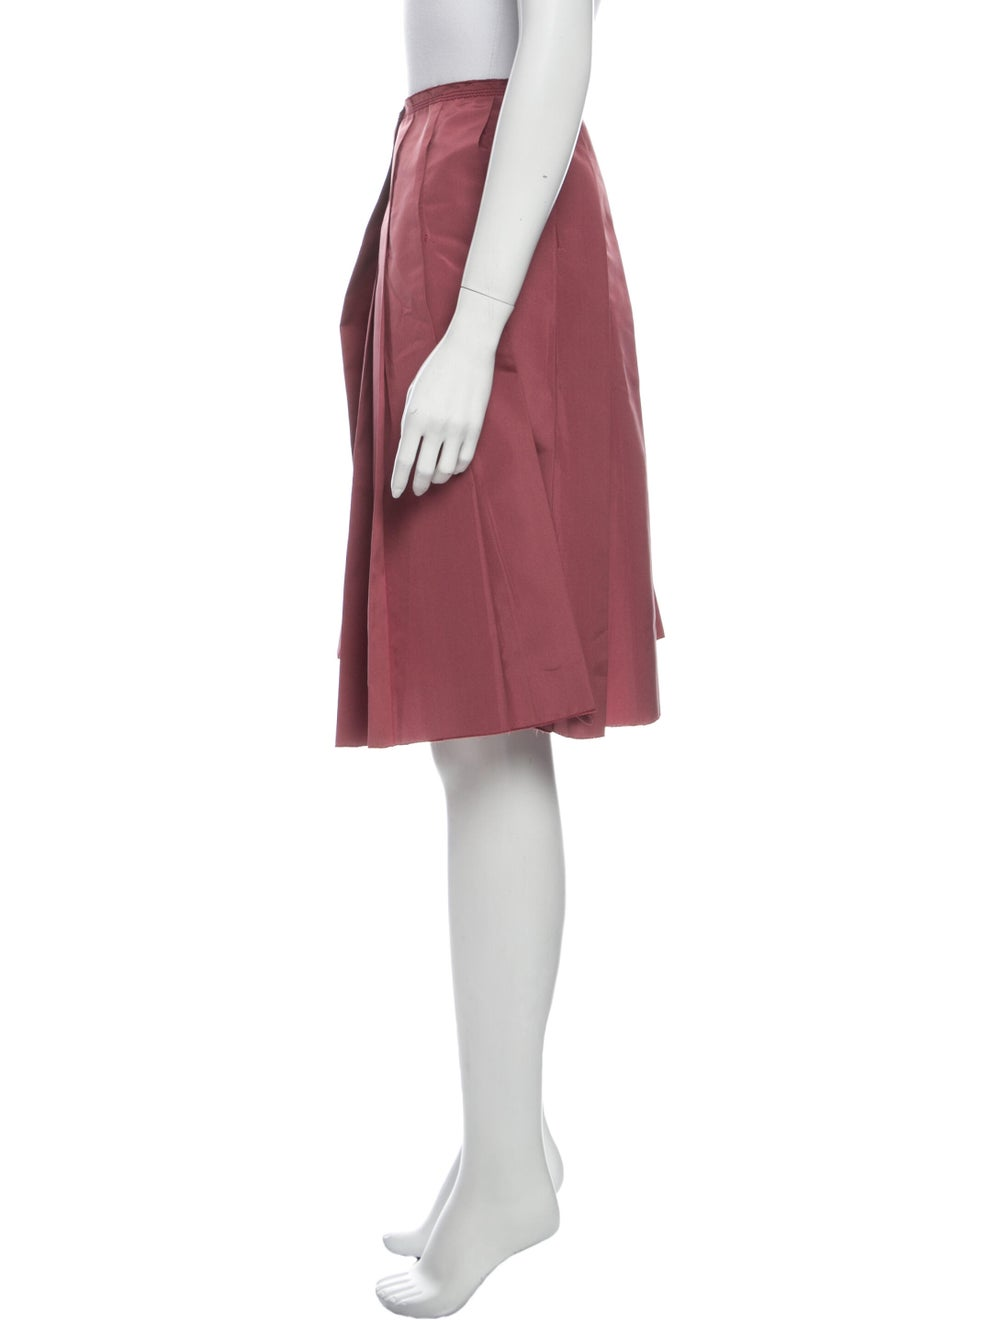 Prada Pleated Accents Knee-Length Skirt Red - image 2